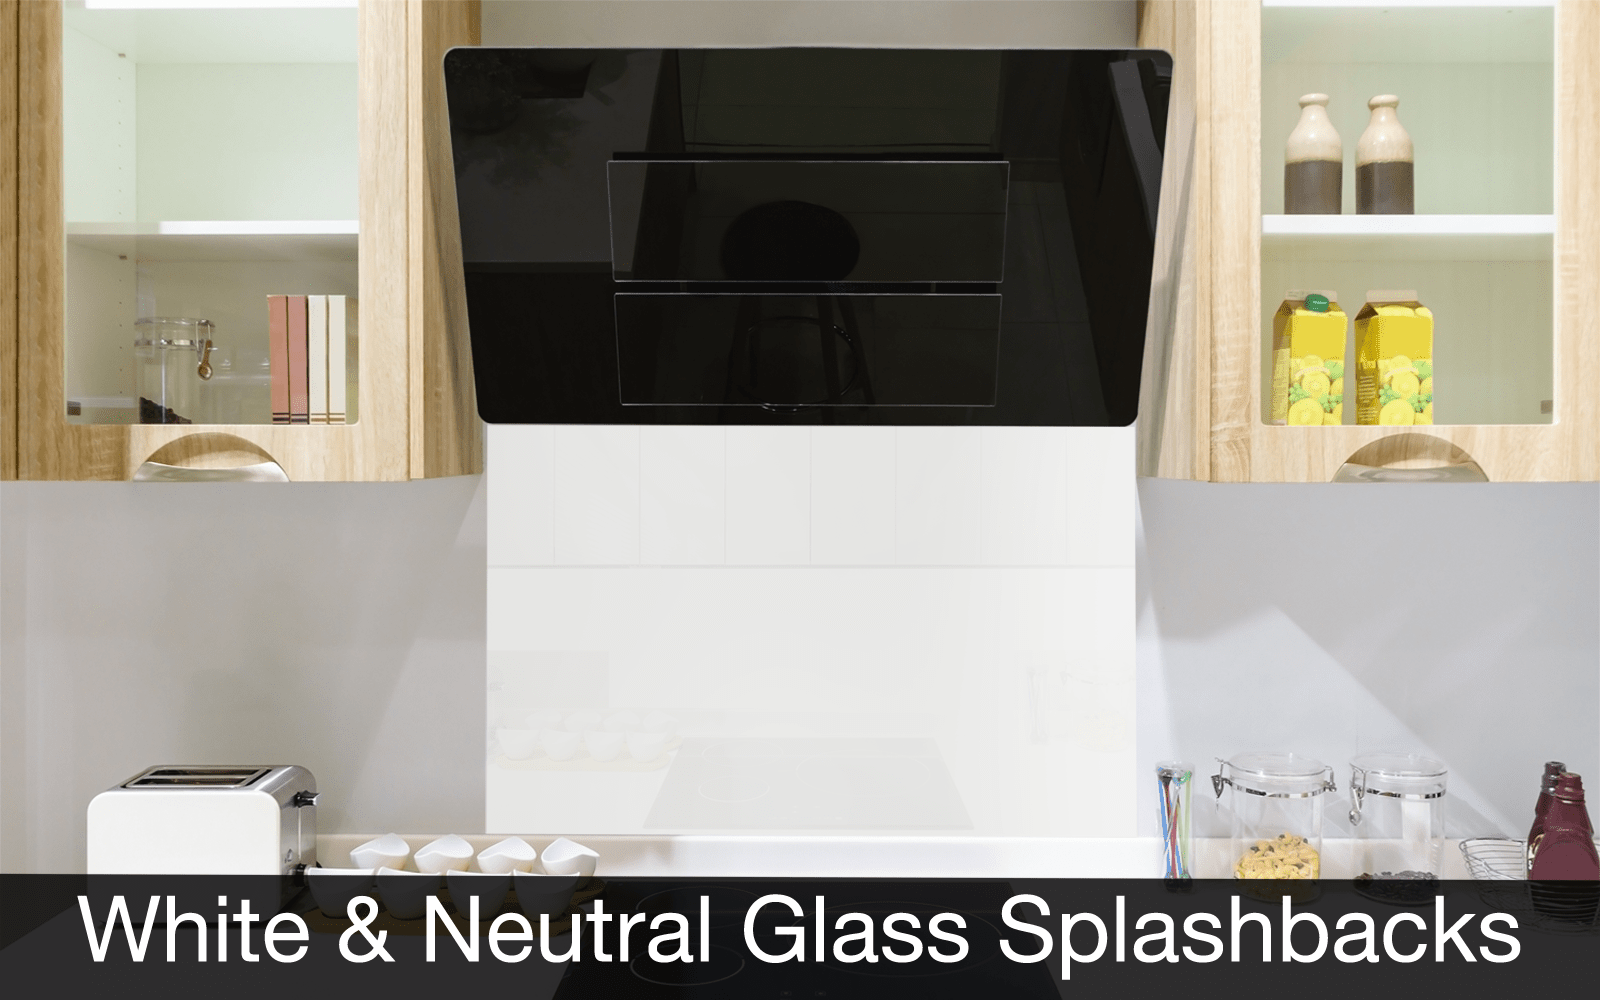 White and Neutral Glass Splashbacks